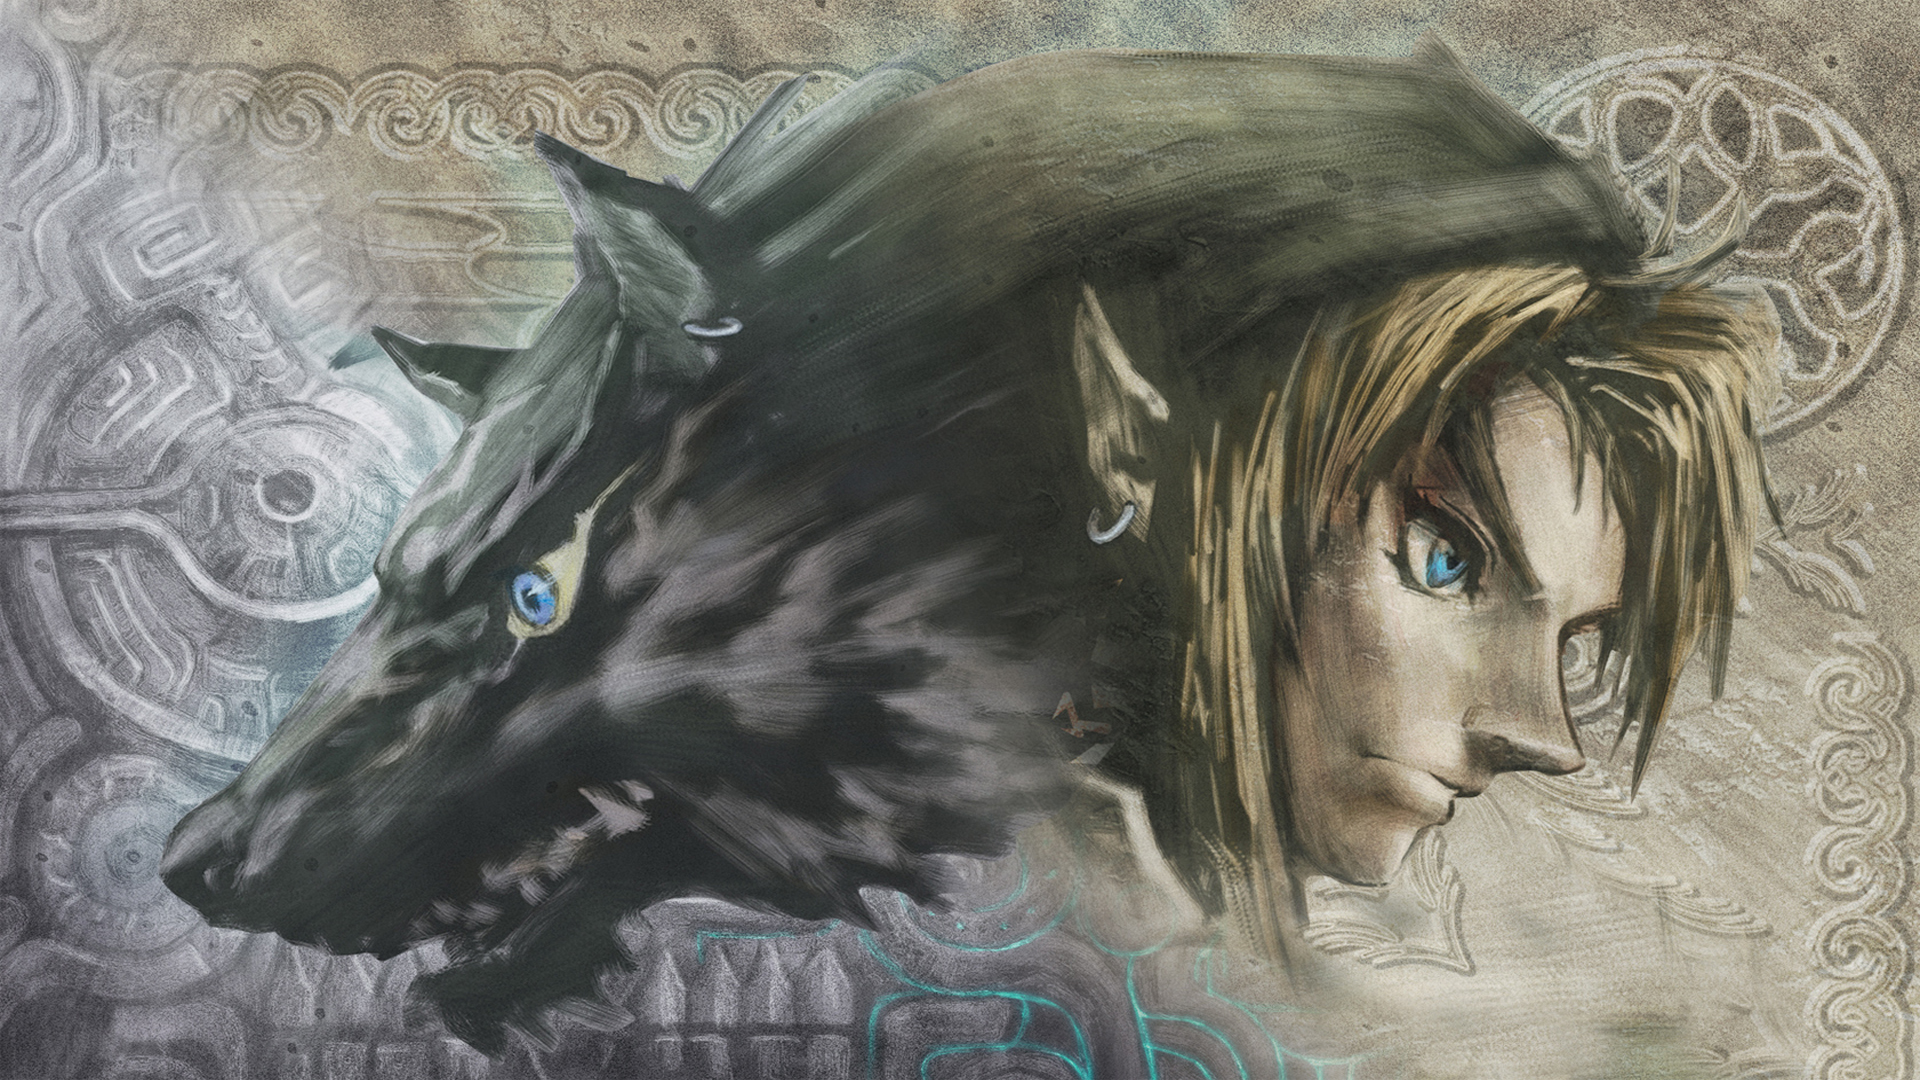 Legend Of Zelda Artwork The Legend Of Zelda Twilight Princess 1920x1080